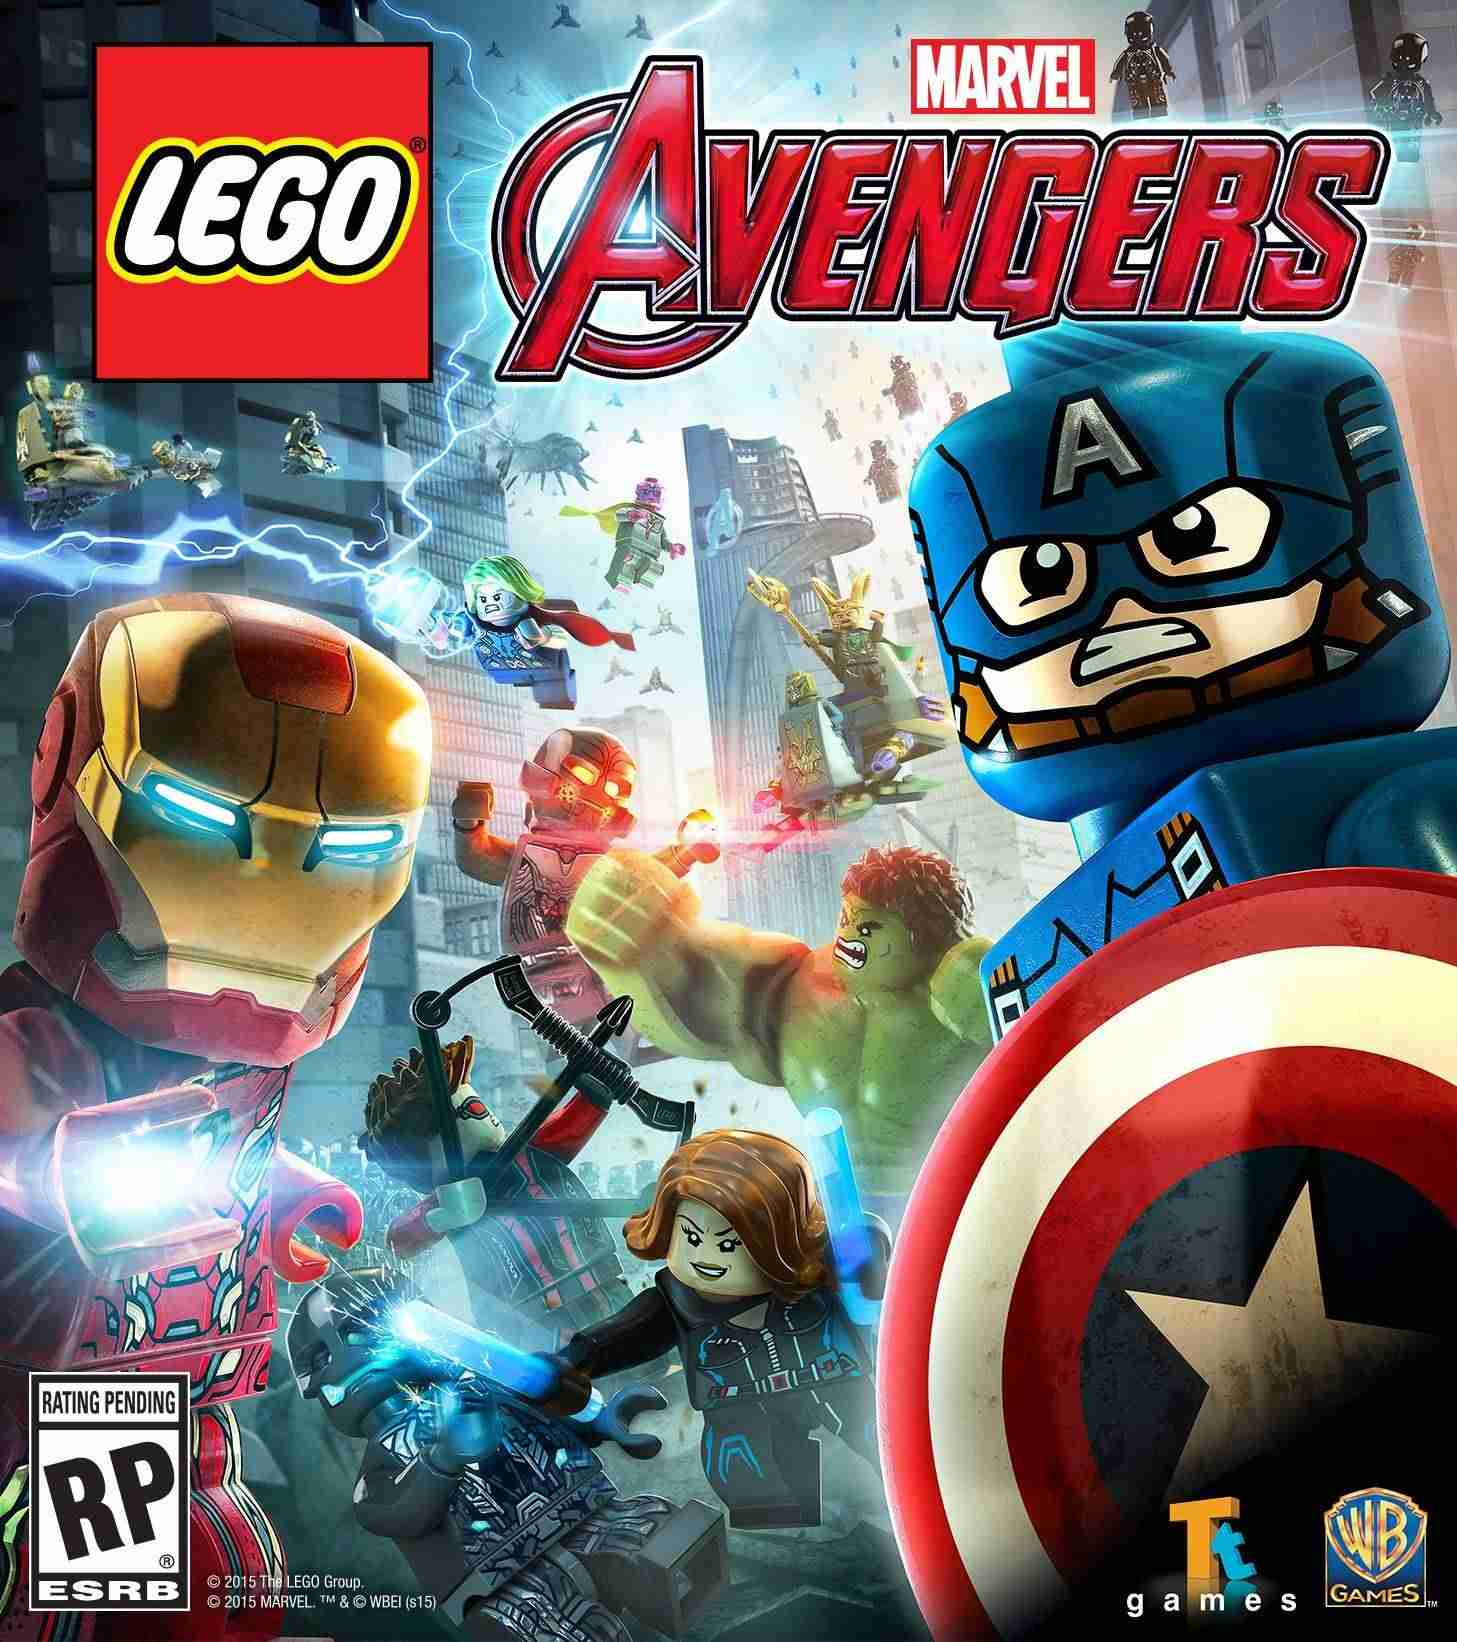 Descargar Lego Marvels Avengers [MULTI][ANTiDOTE] por Torrent